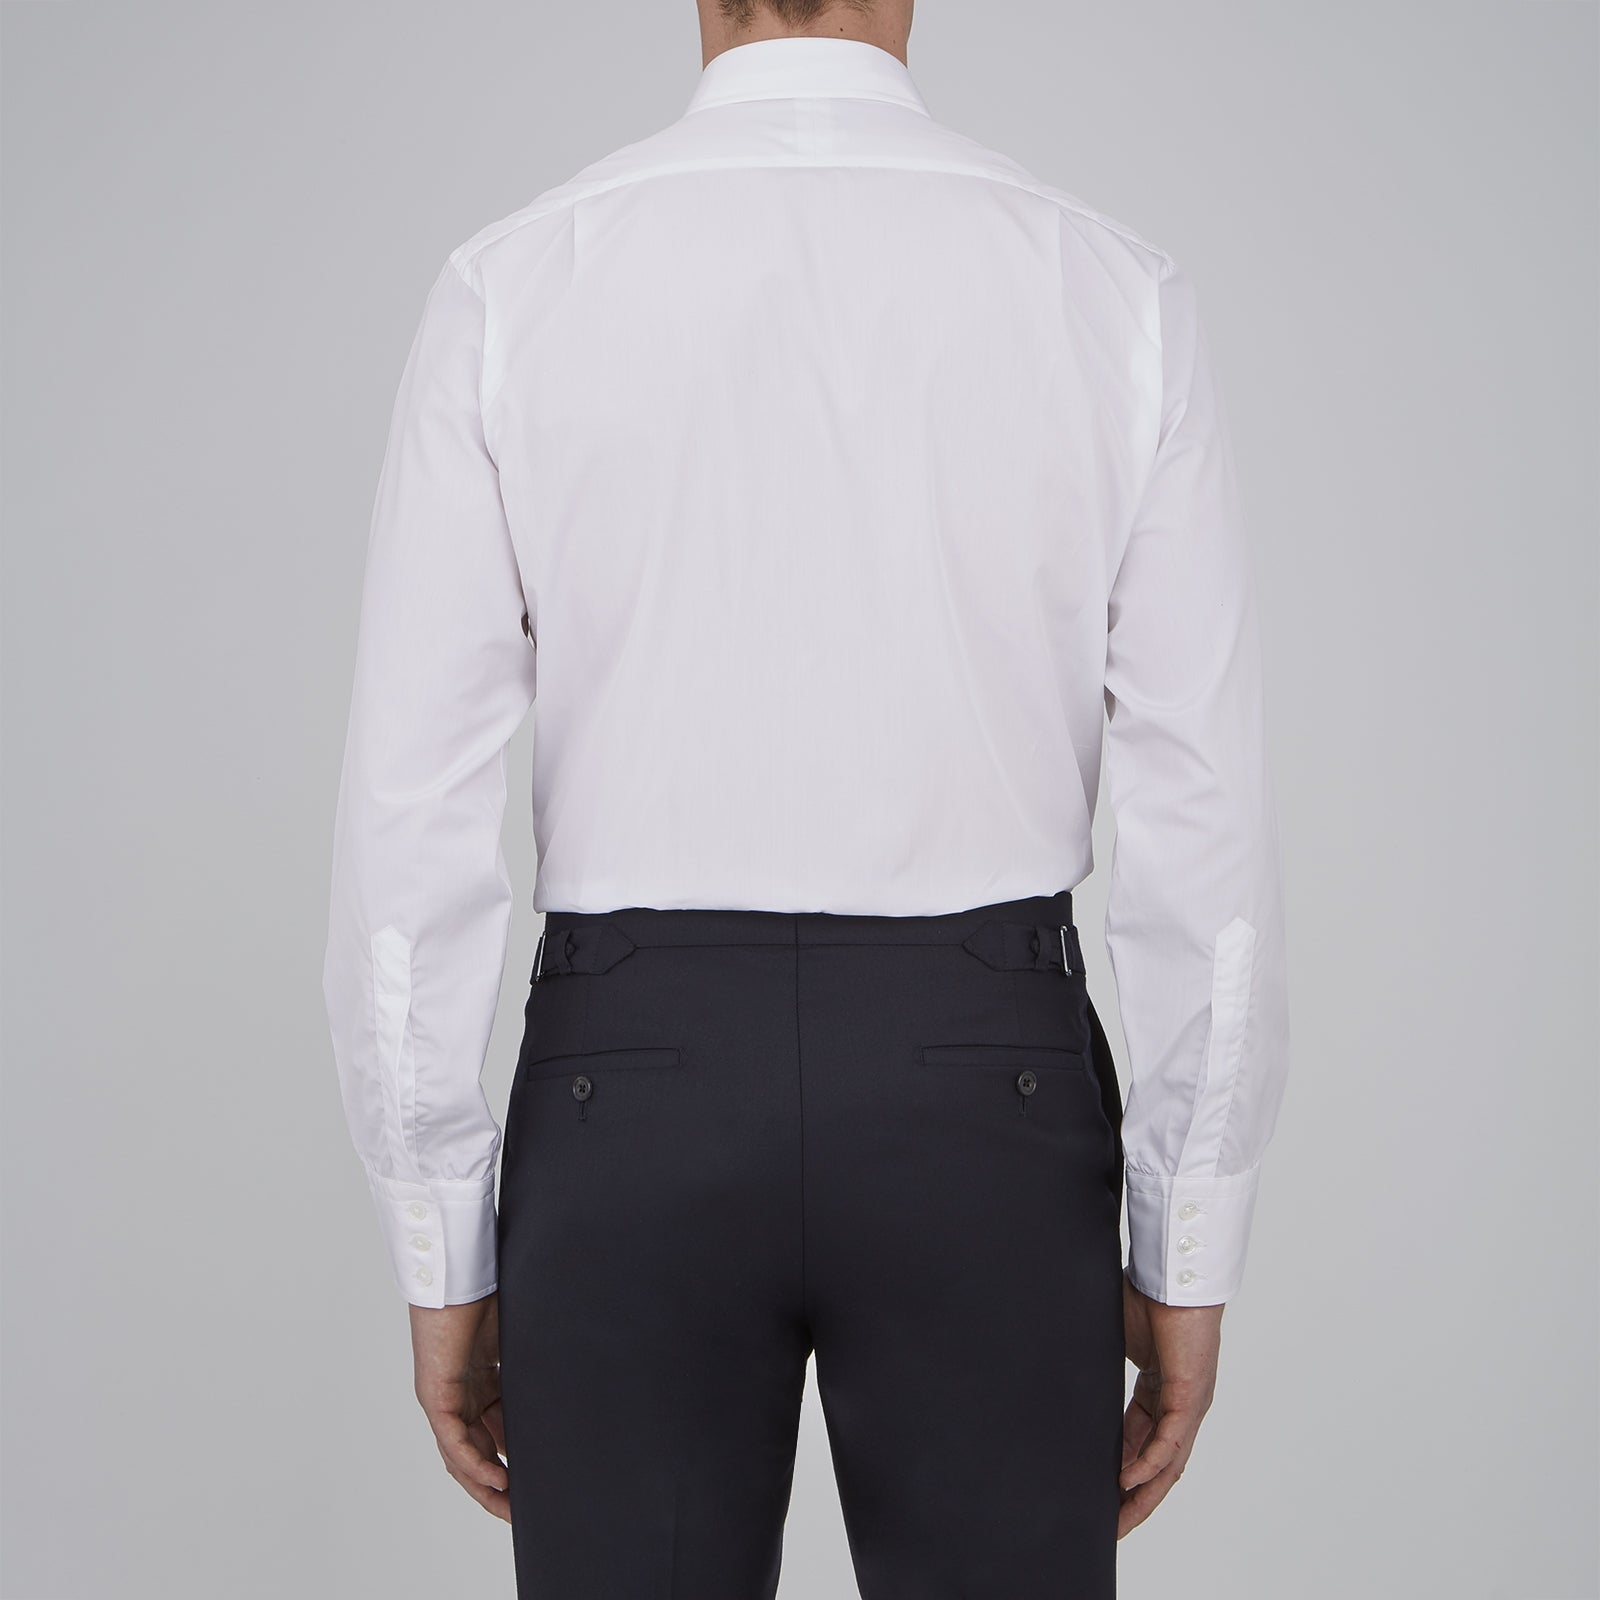 Two-Fold 120 White Shirt with T&A Collar and 3-Button Cuffs